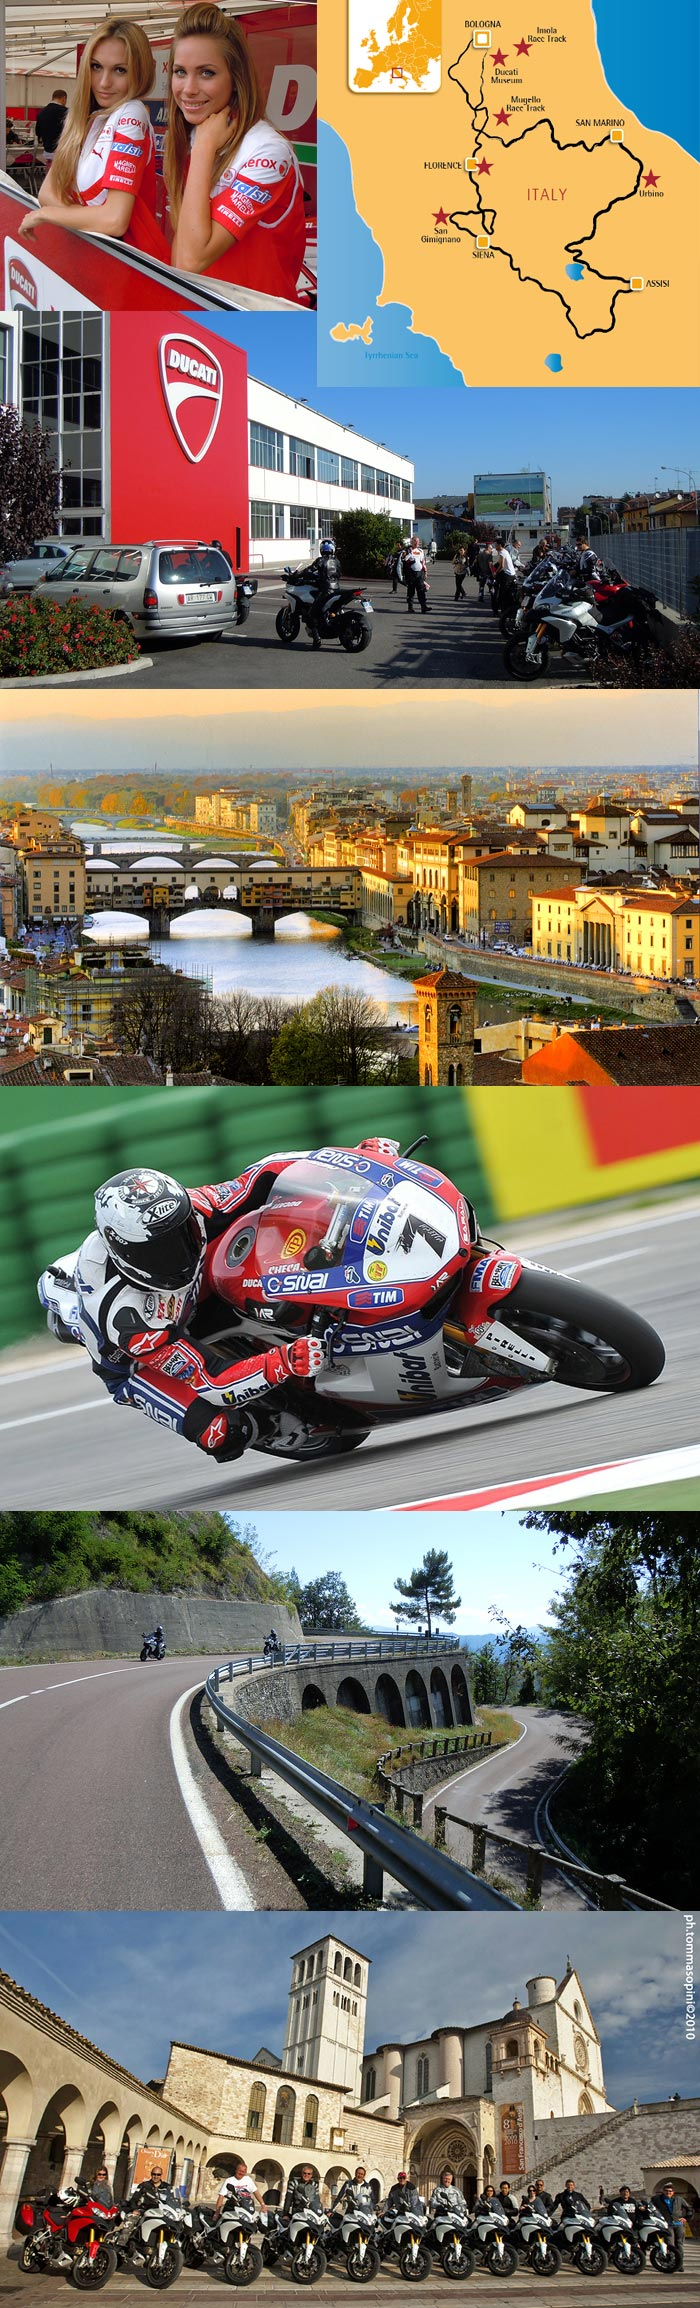 Edelweiss Ducati Italy World Superbike MotoGP Tour